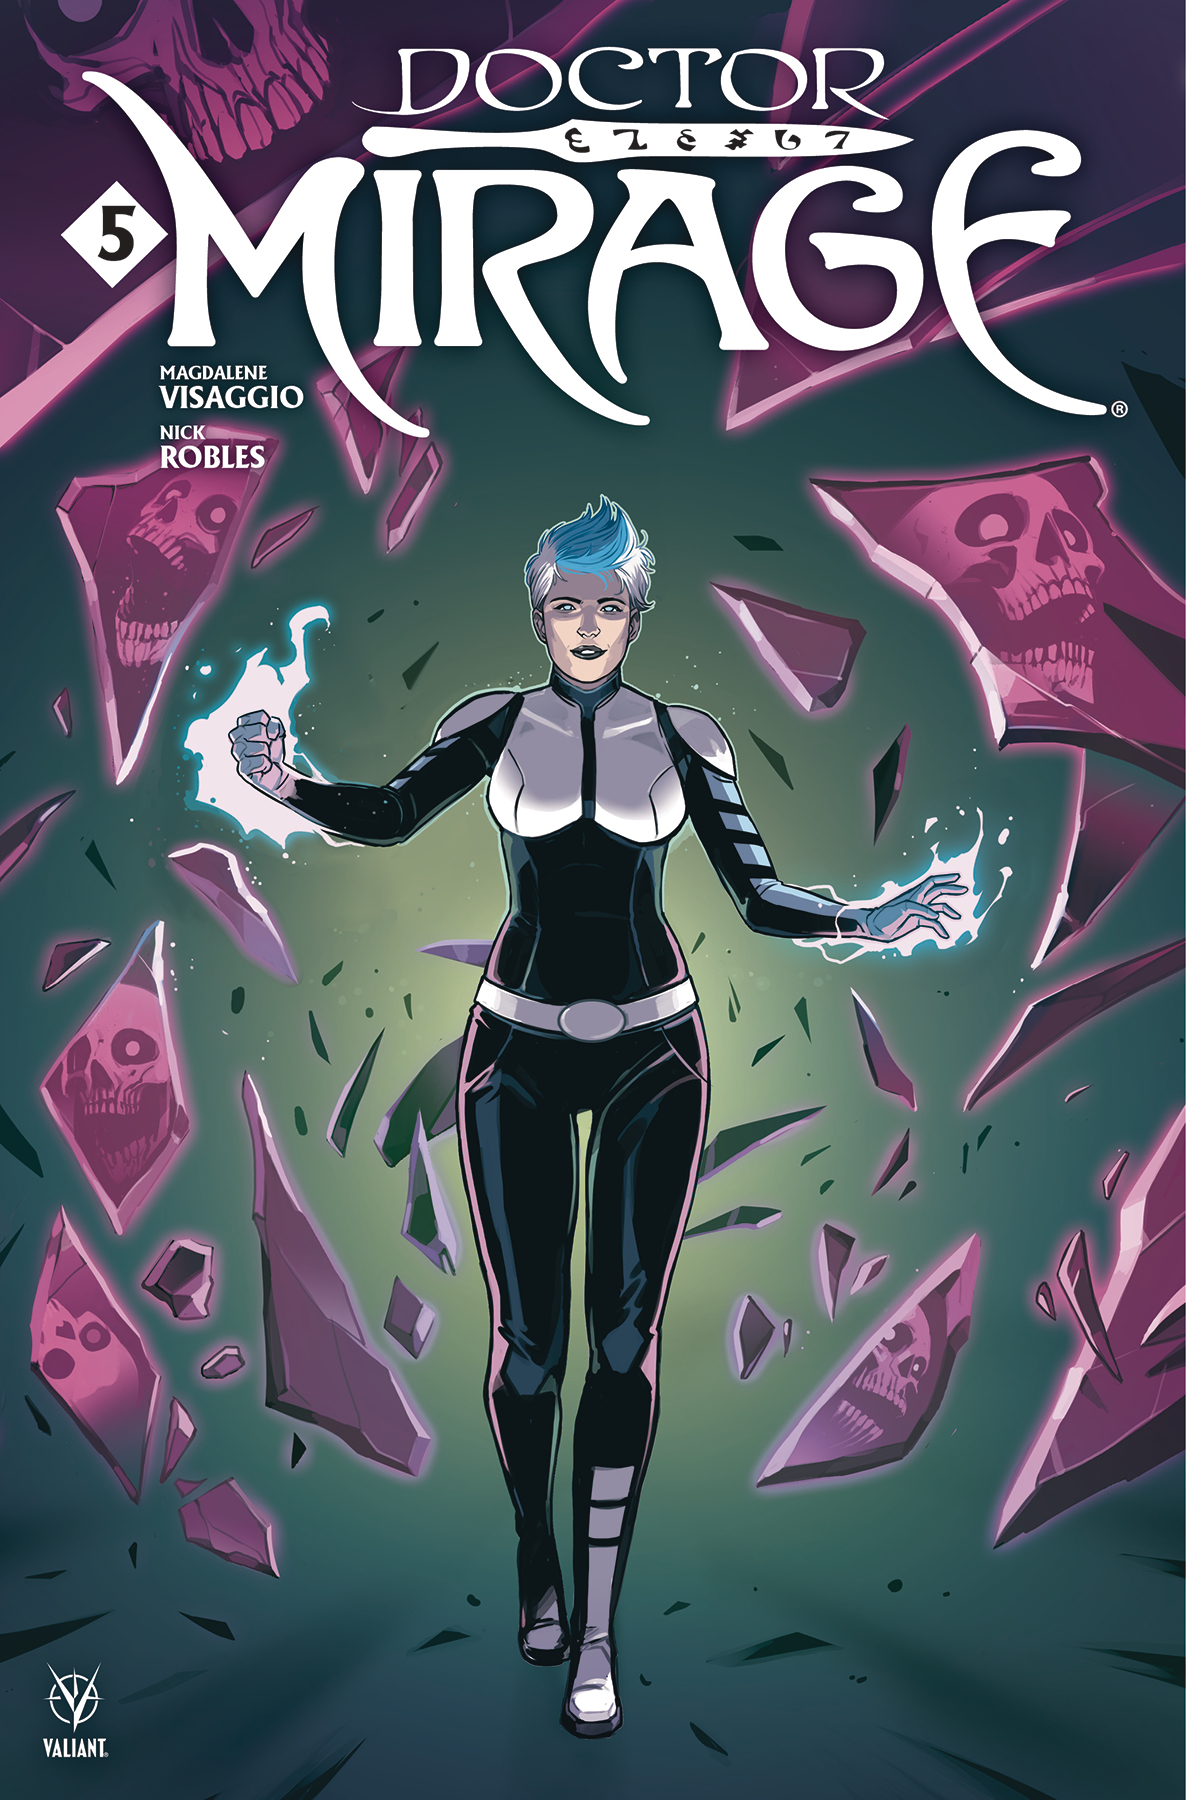 DOCTOR MIRAGE #5 (OF 5) CVR B WIJNGAARD